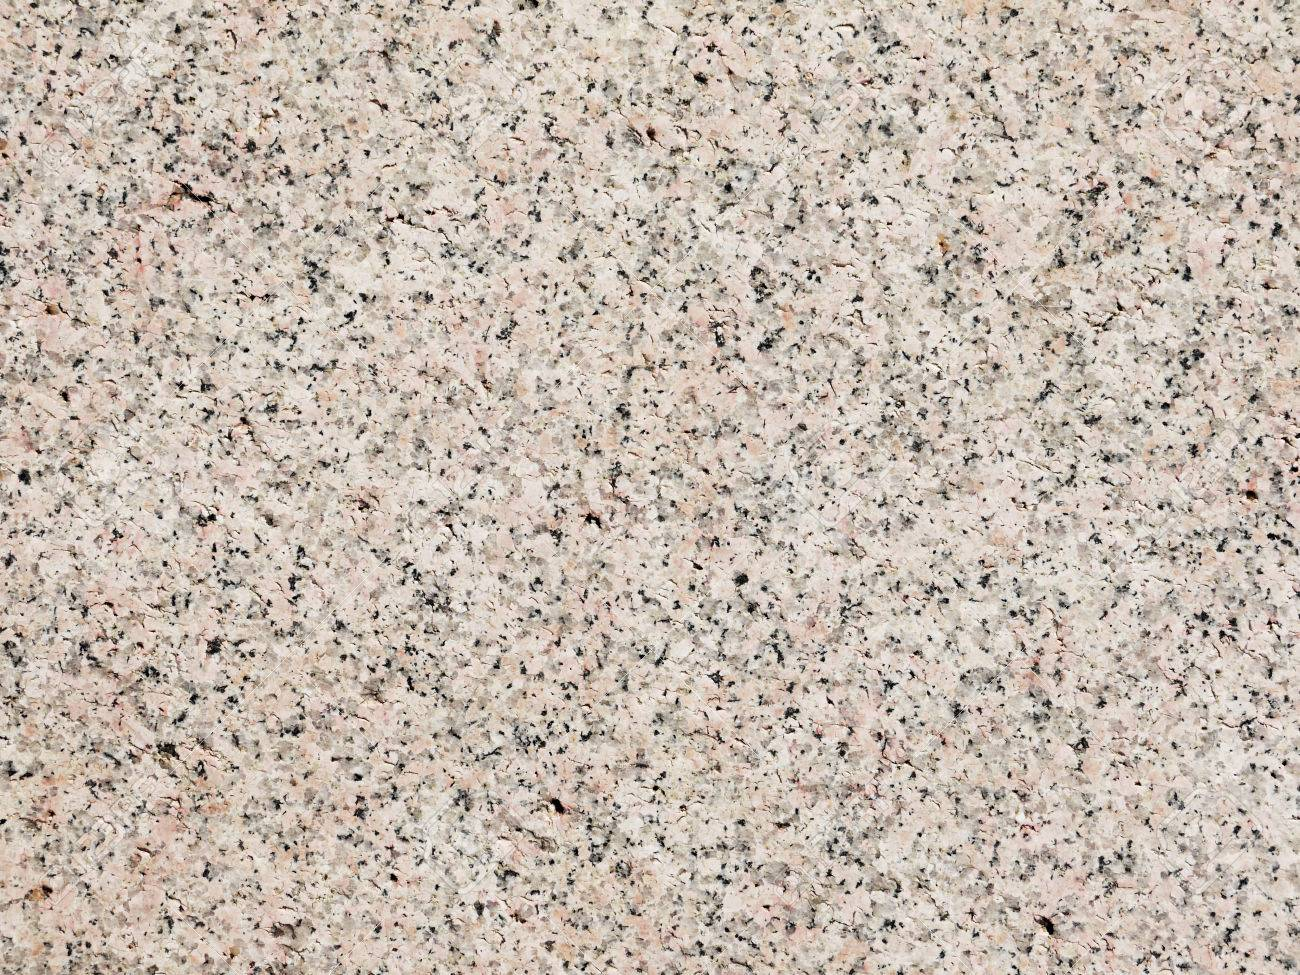 Pink Granite Texture Stock Photo, Picture And Royalty Free Image. Image 47754841.